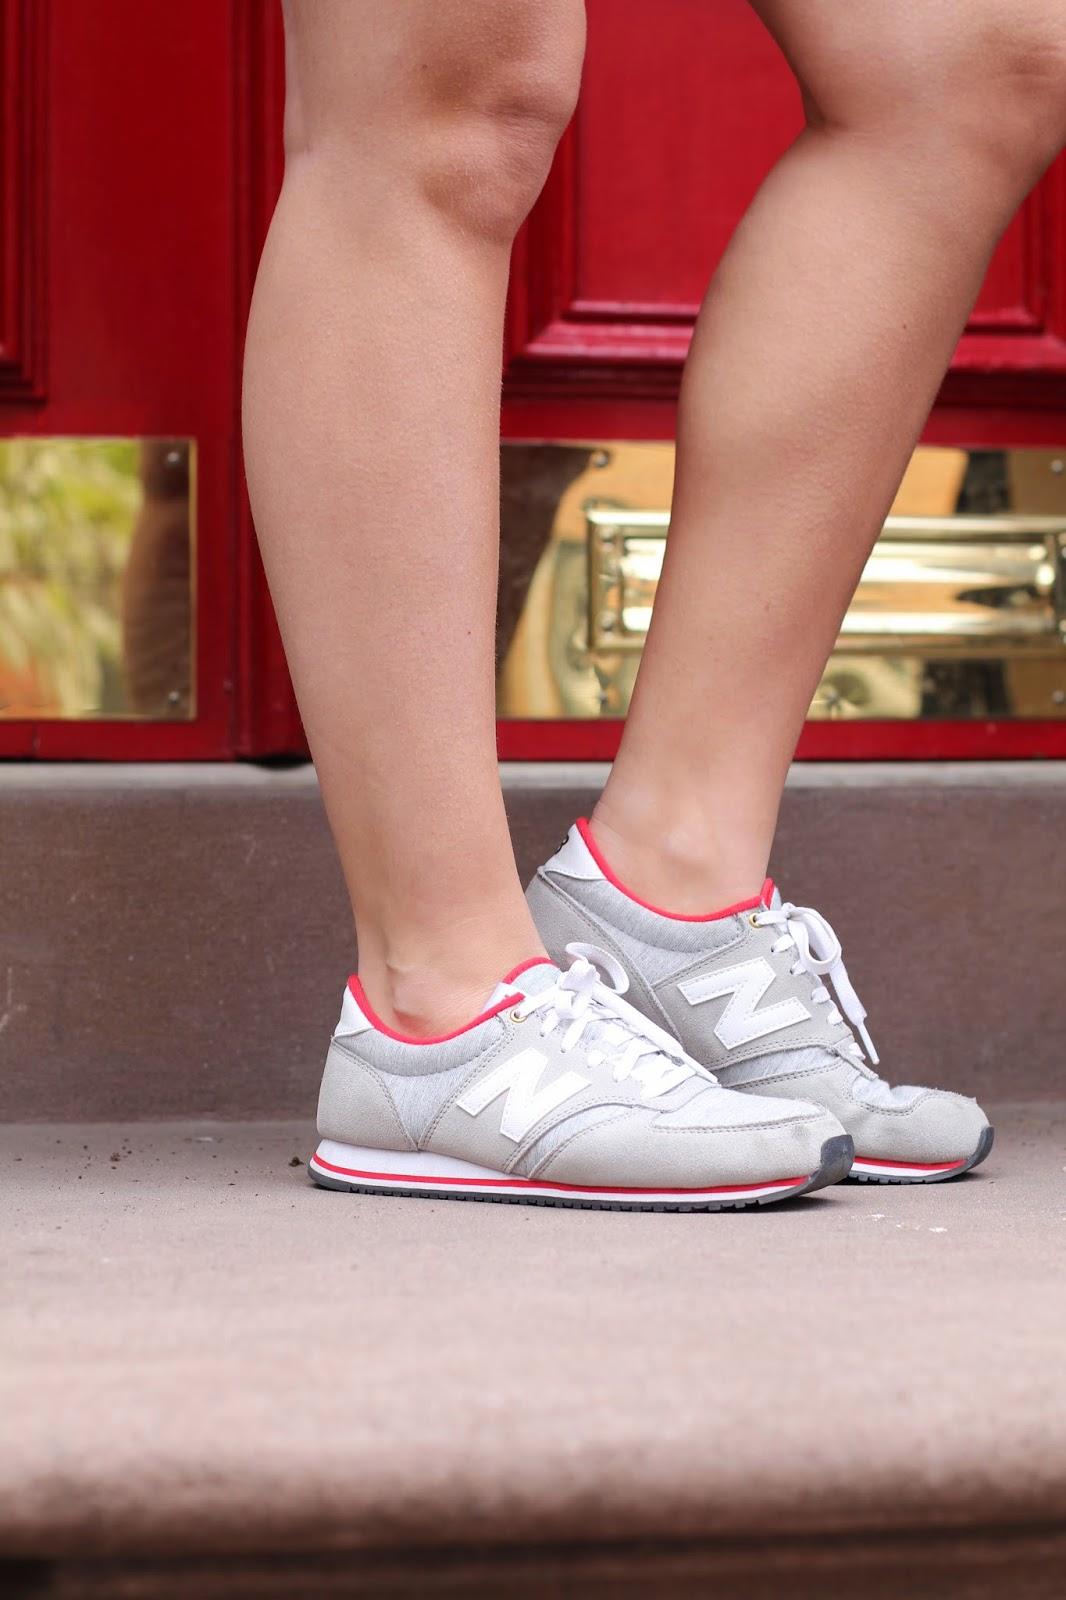 new balance sneakers fashion blog, fashion blogger sneaker style